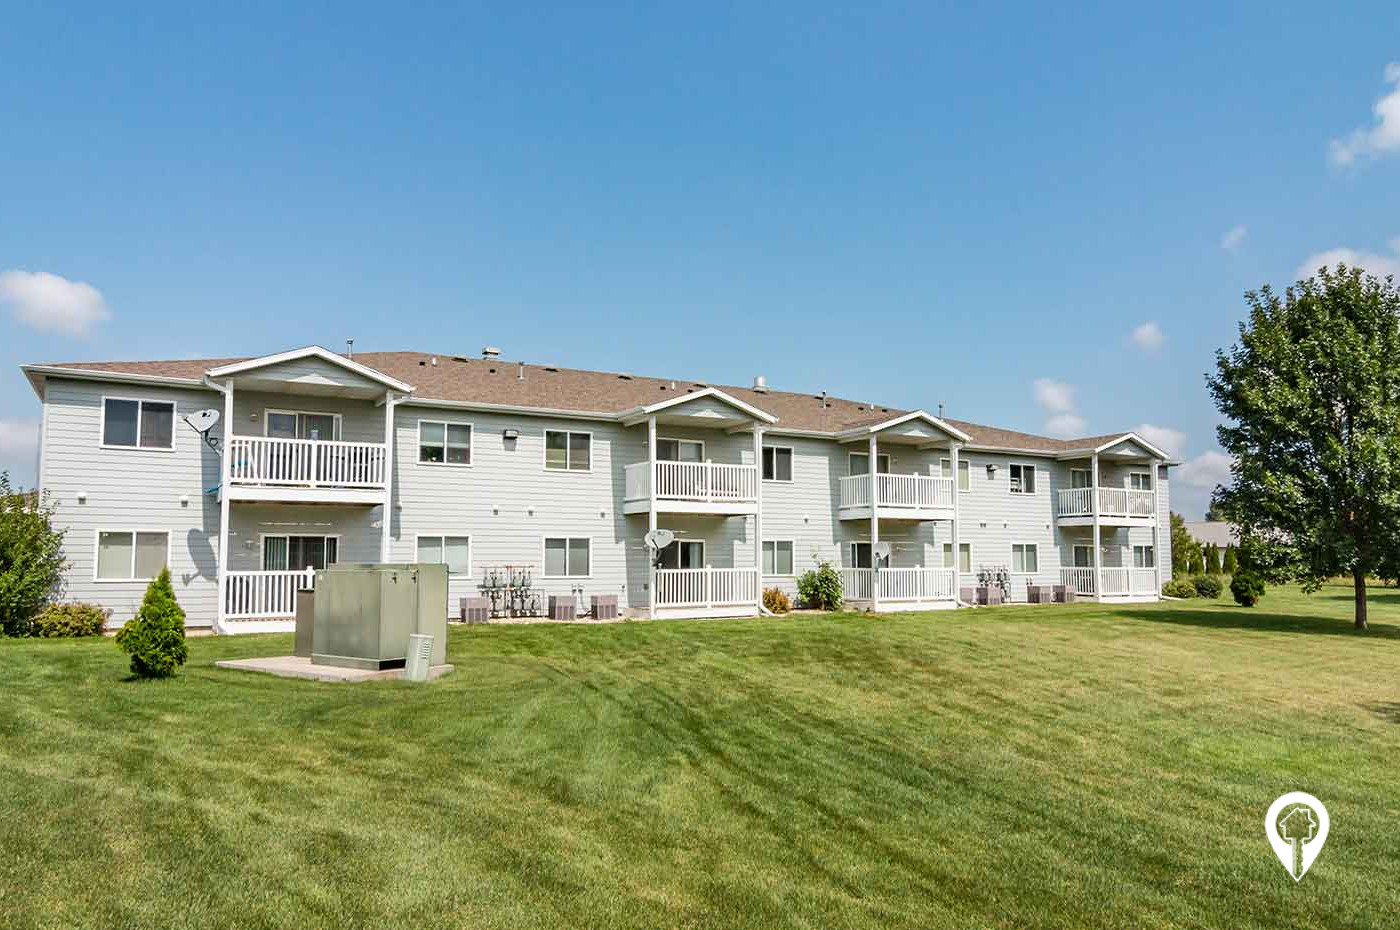 Wheatridge Apartments